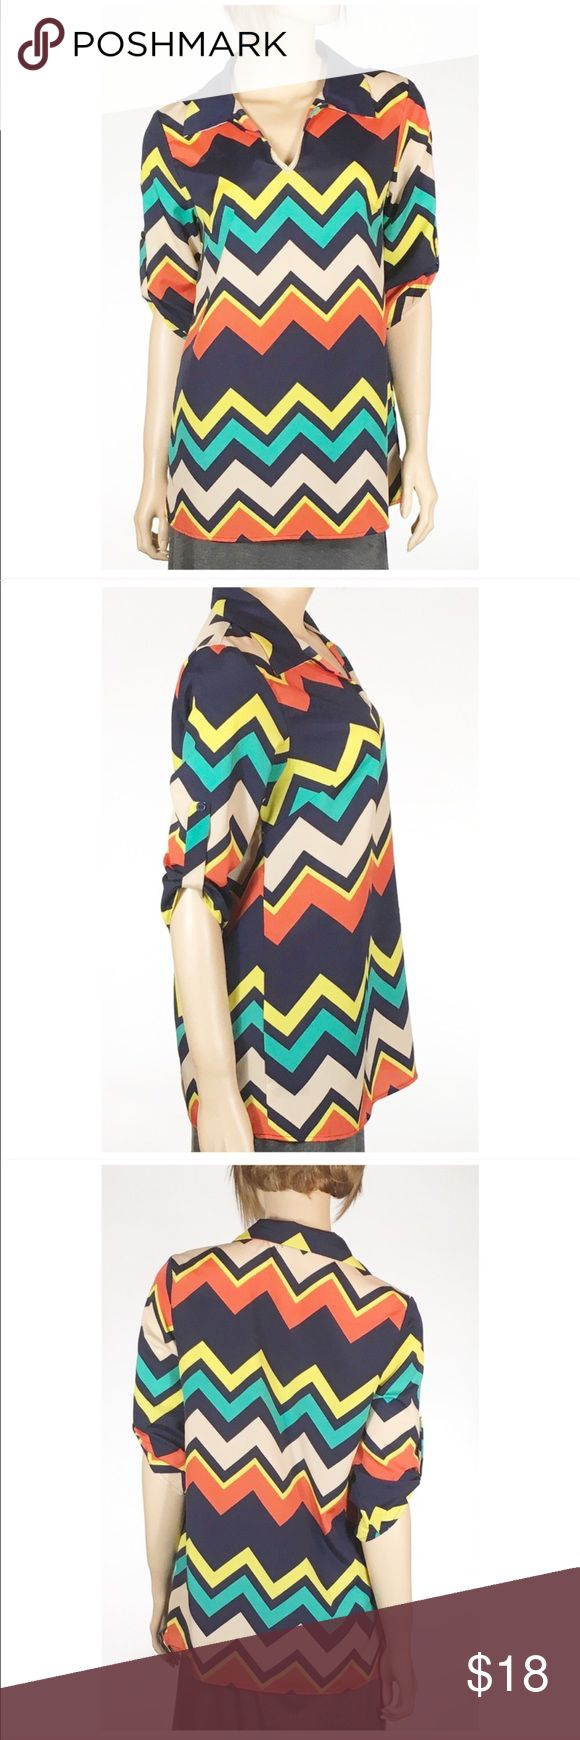 Chevron Tunic Blouse with Collar Chevron Tunic Blouse. 100% polyester, three-quarter length sleeves with tabs, collar, V-neck. Vibrant colors and in excellent condition. Chest measures 19 inches across from armpit to armpit. 28 inches long. Size medium Tunic.   🔺Questions? Please ask.  🔺I want your Poshmark experience to be easy & enjoyable. 🔺Thank you for shopping at Posh Mishmosh.🎉 Tops Tunics